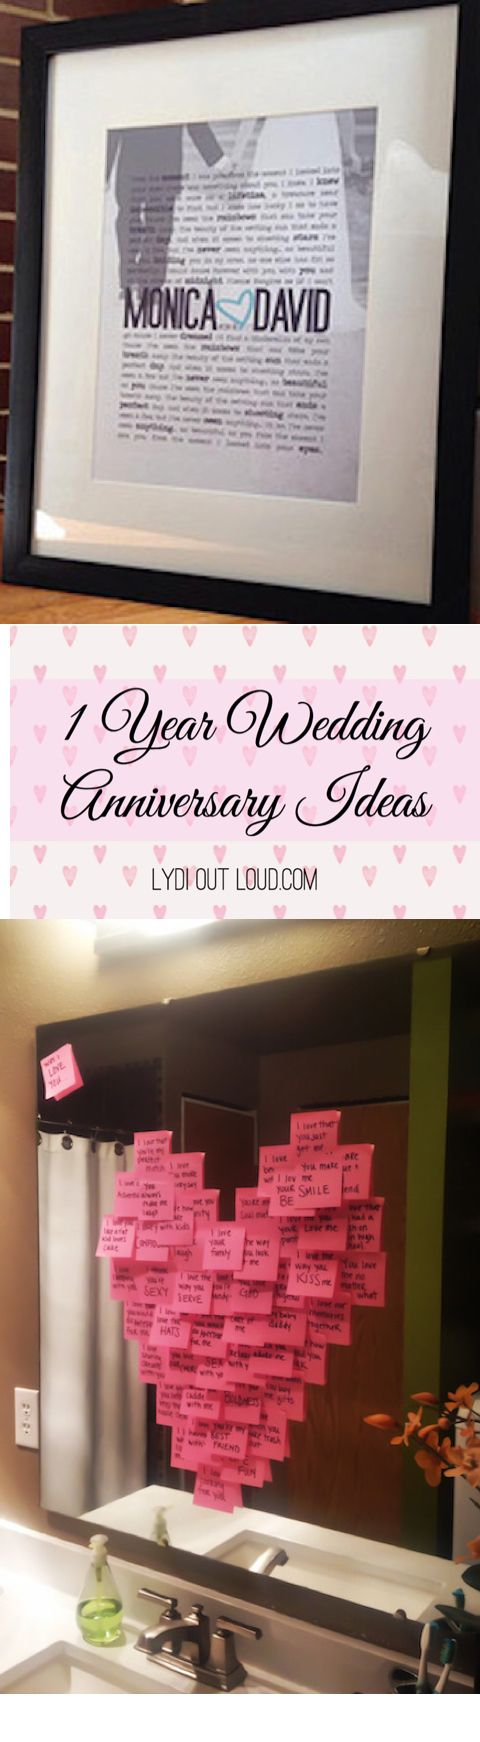 Cute 1 Year Wedding Anniversary Ideas For Him : Year Anniversary Gift Ideas First anniversary, Wedding and Lyrics